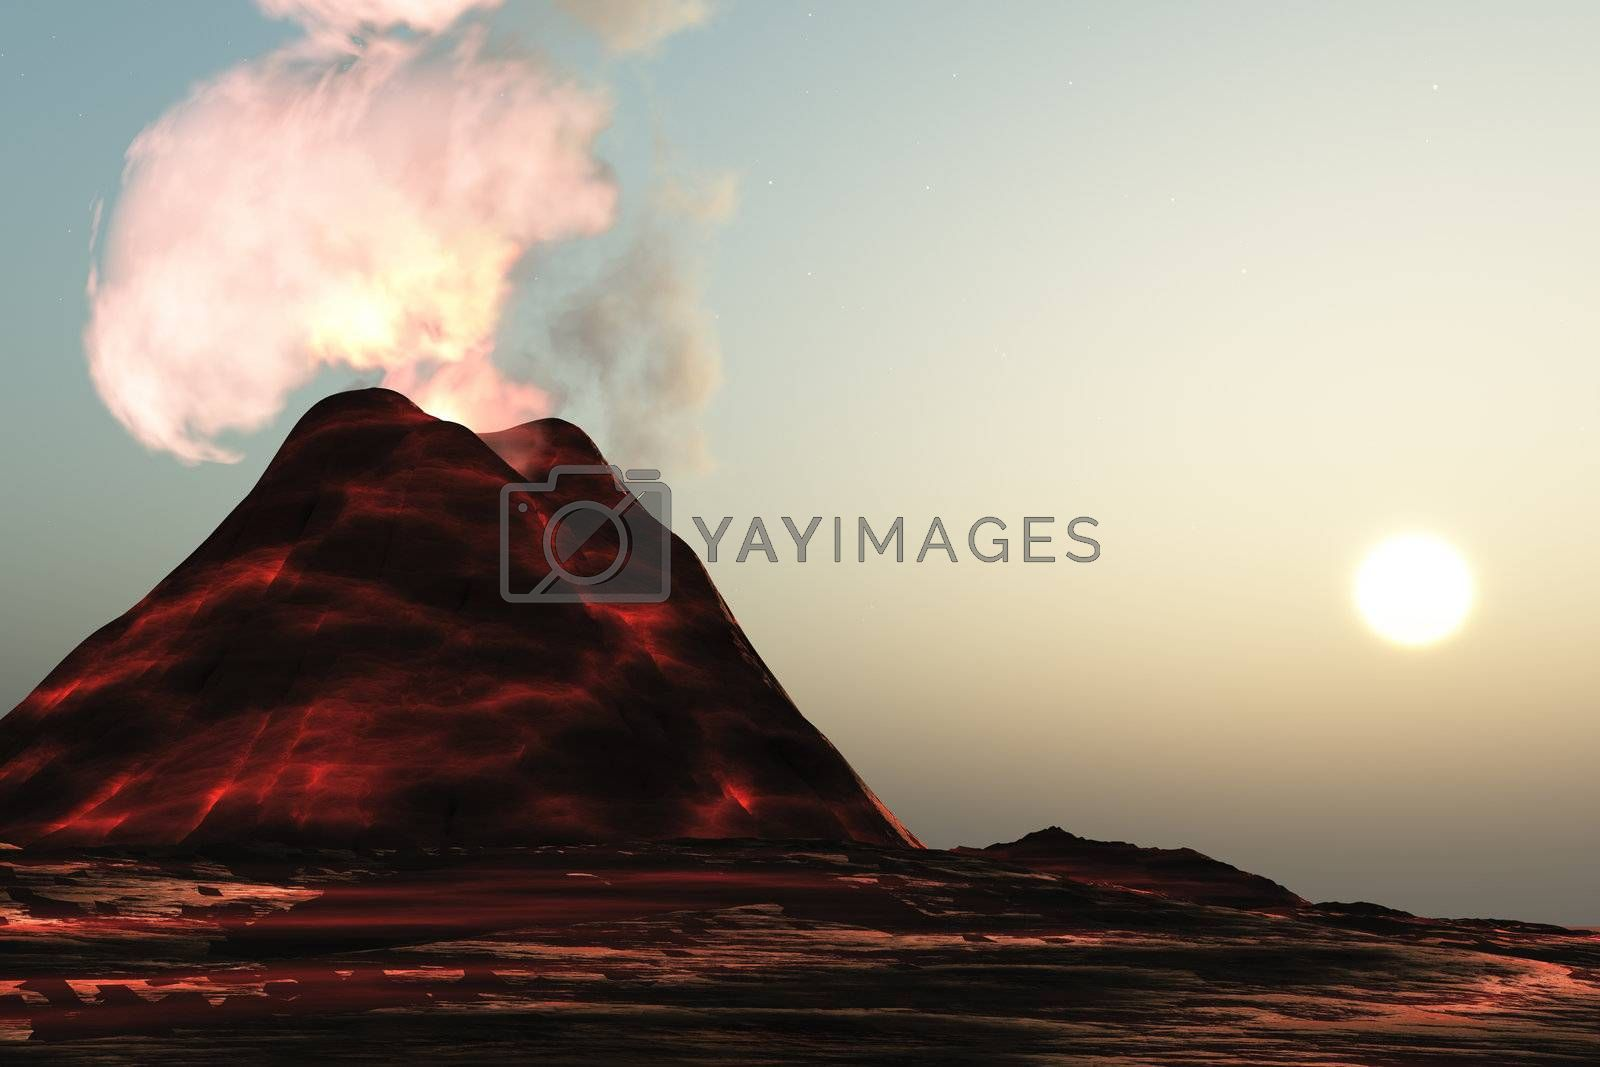 A new volcano made of molten lava expels vibrant smoke plumes.